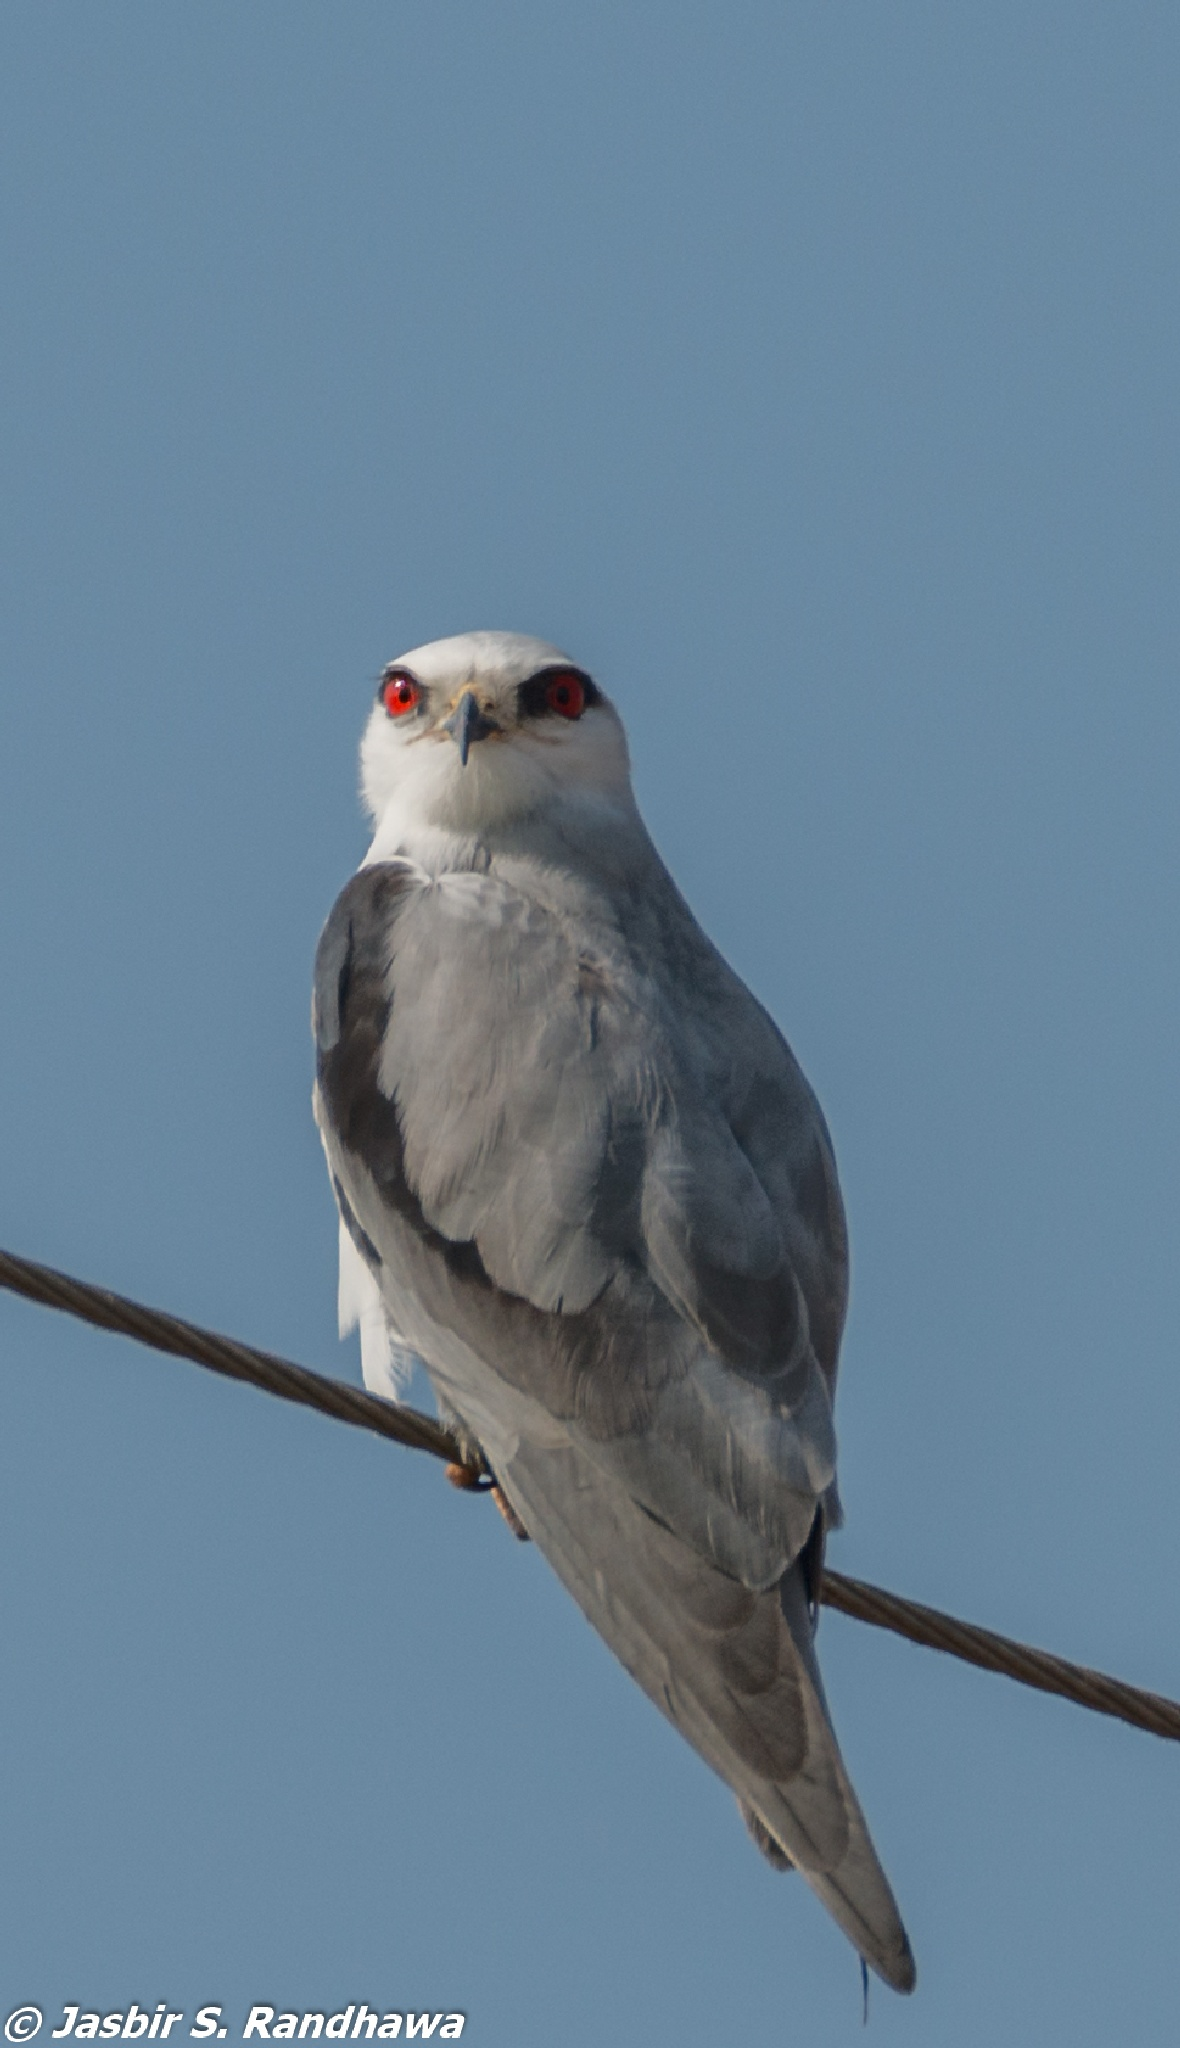 Black-winged Kite (Elanus caeruleus) by Jasbir S. Randhawa